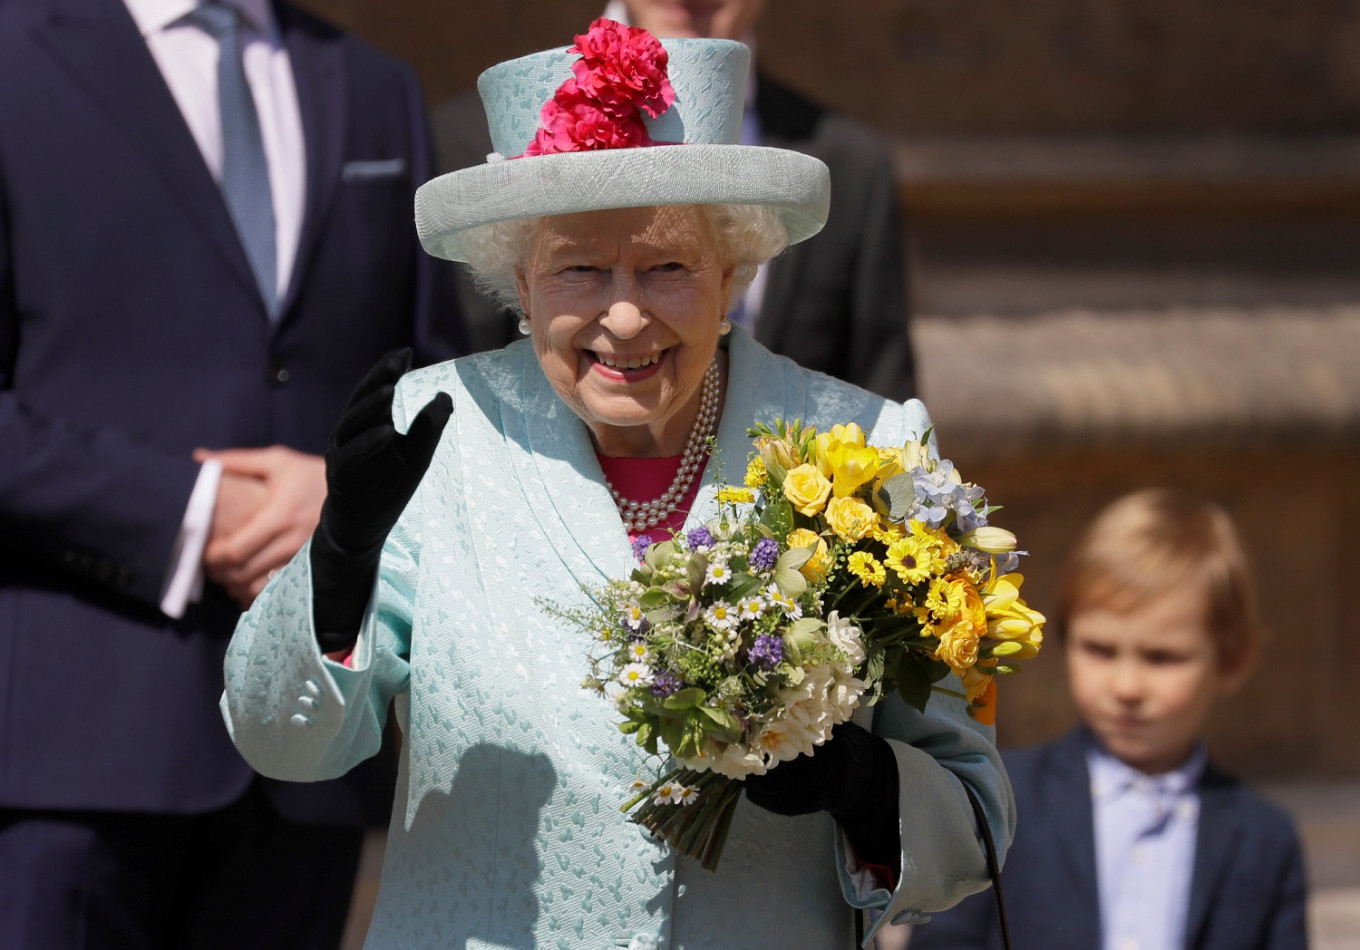 Britain's Queen Elizabeth celebrates 93rd birthday at Easter service